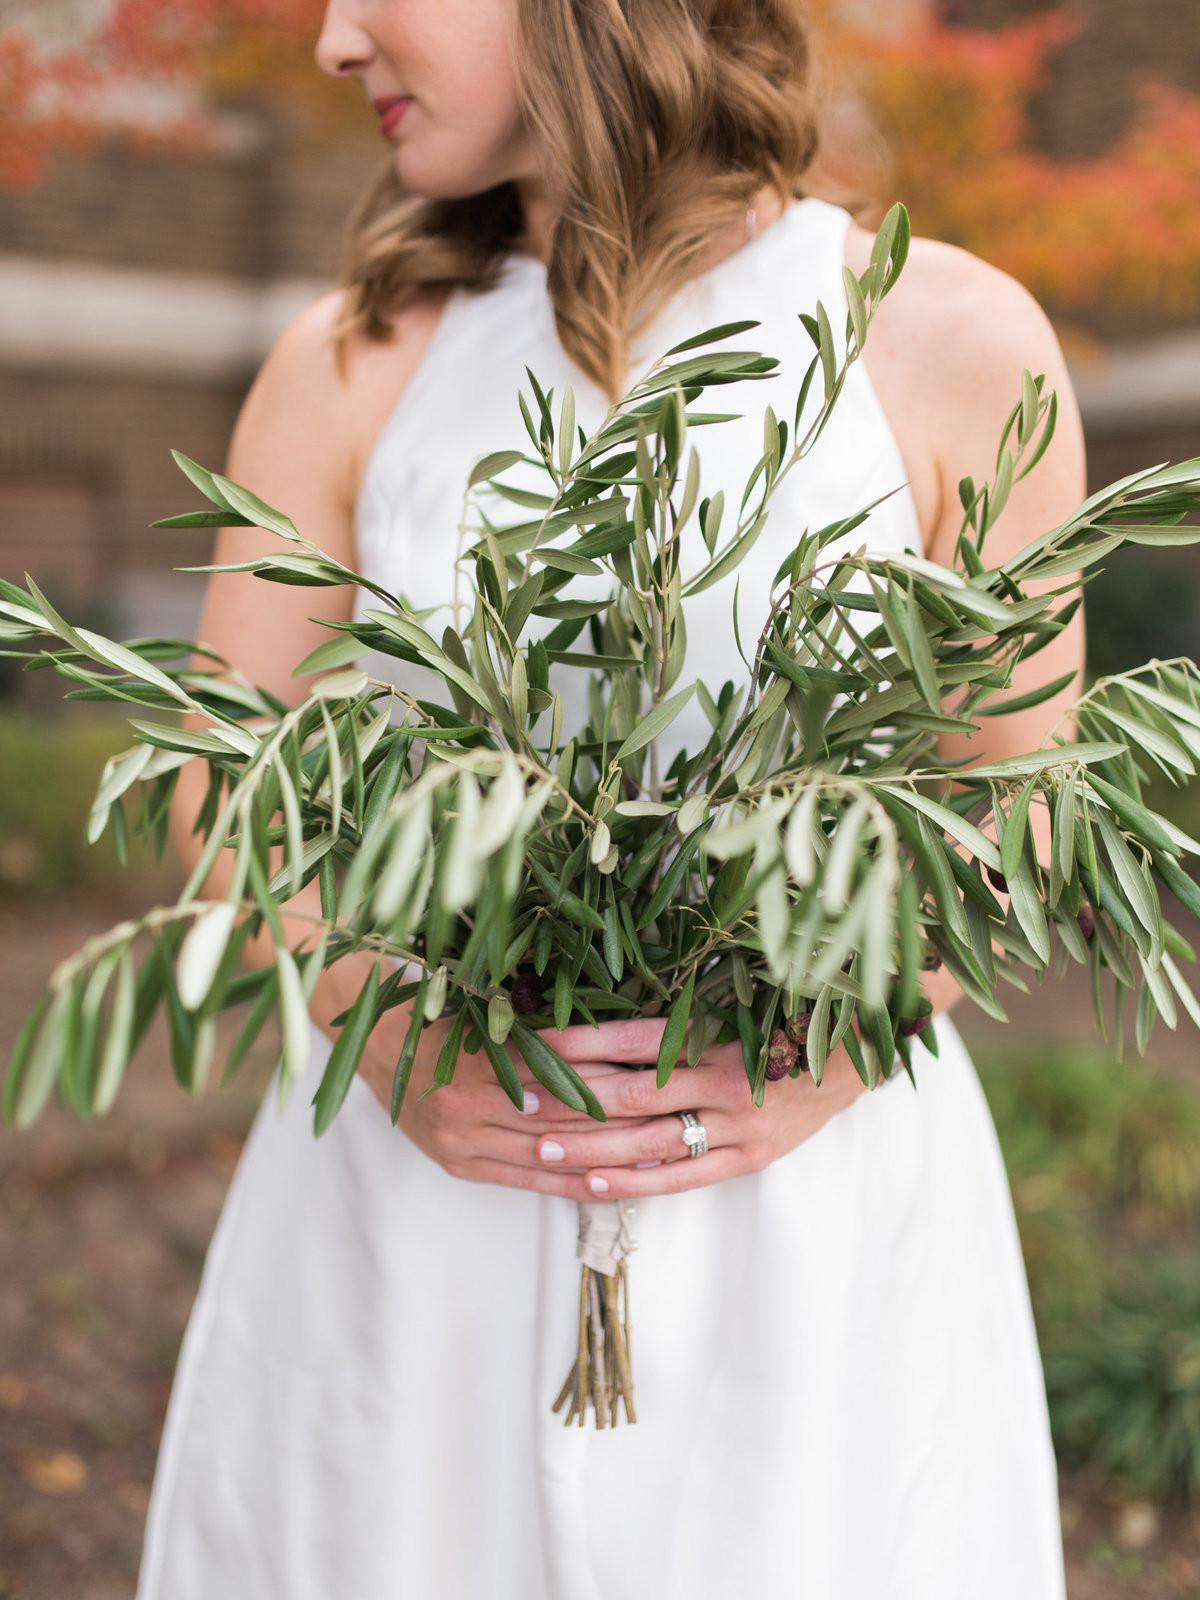 Courtney Hanson Photography - Festive Holiday Wedding in Dallas at Hickory Street Annex-0869